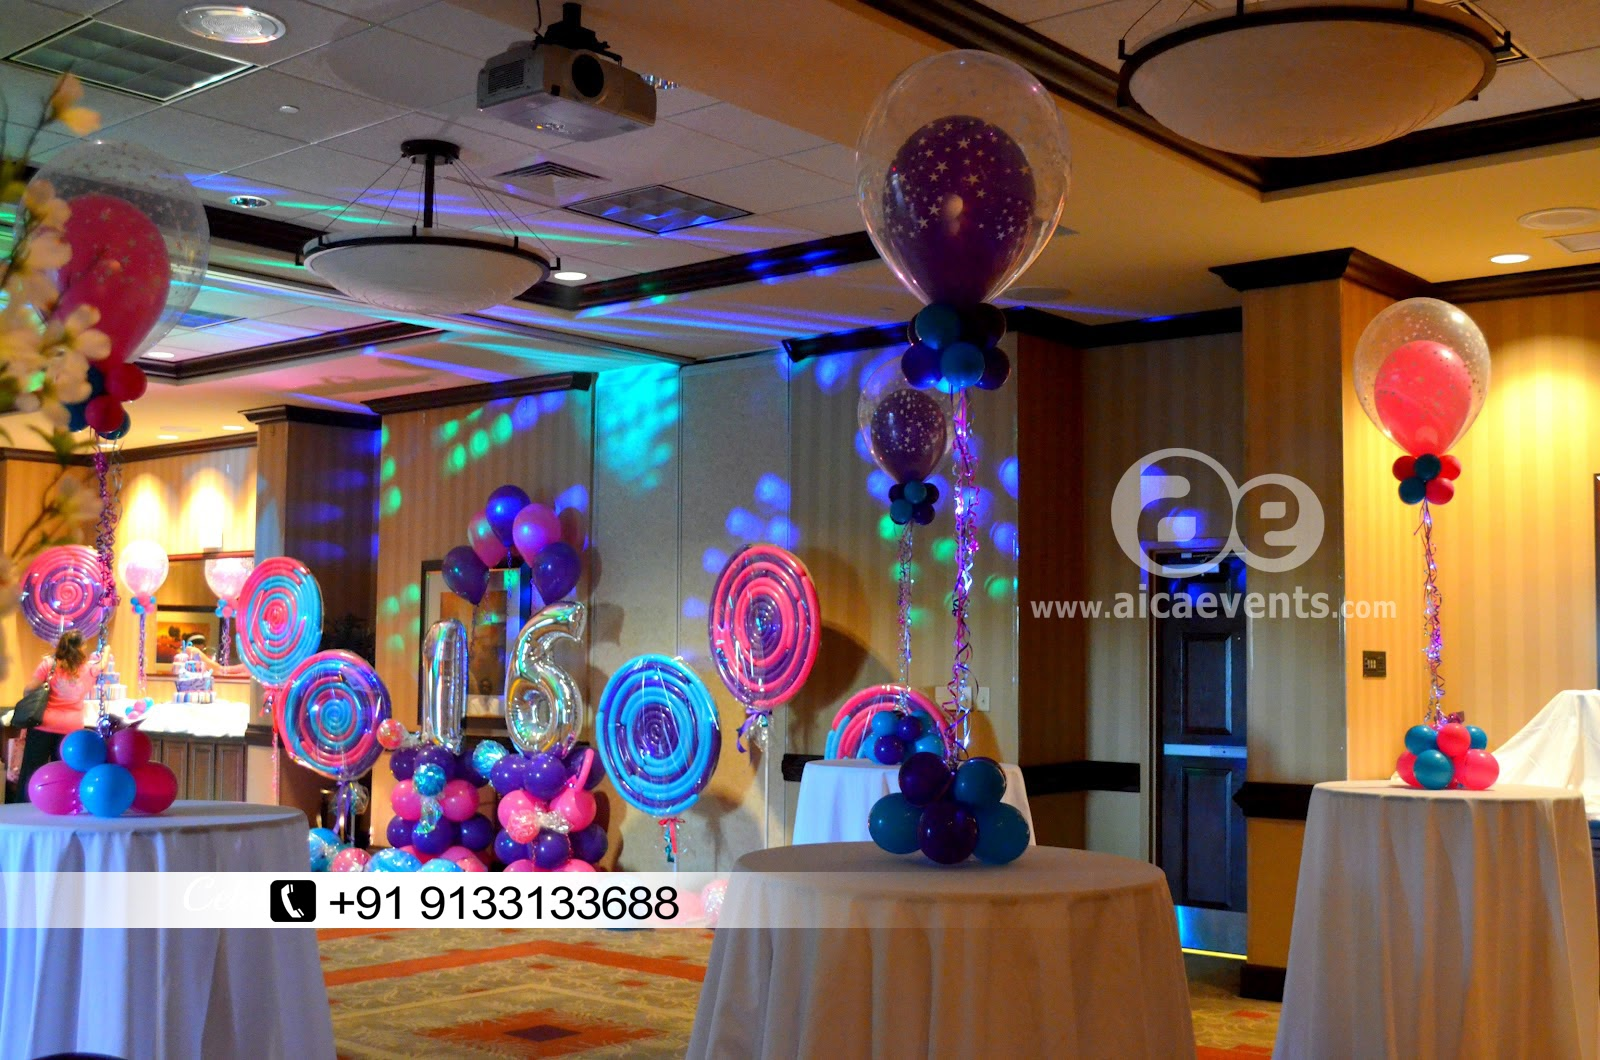 Candy Decorations Aicaevents India Candy Theme Decorations At Hyderabad